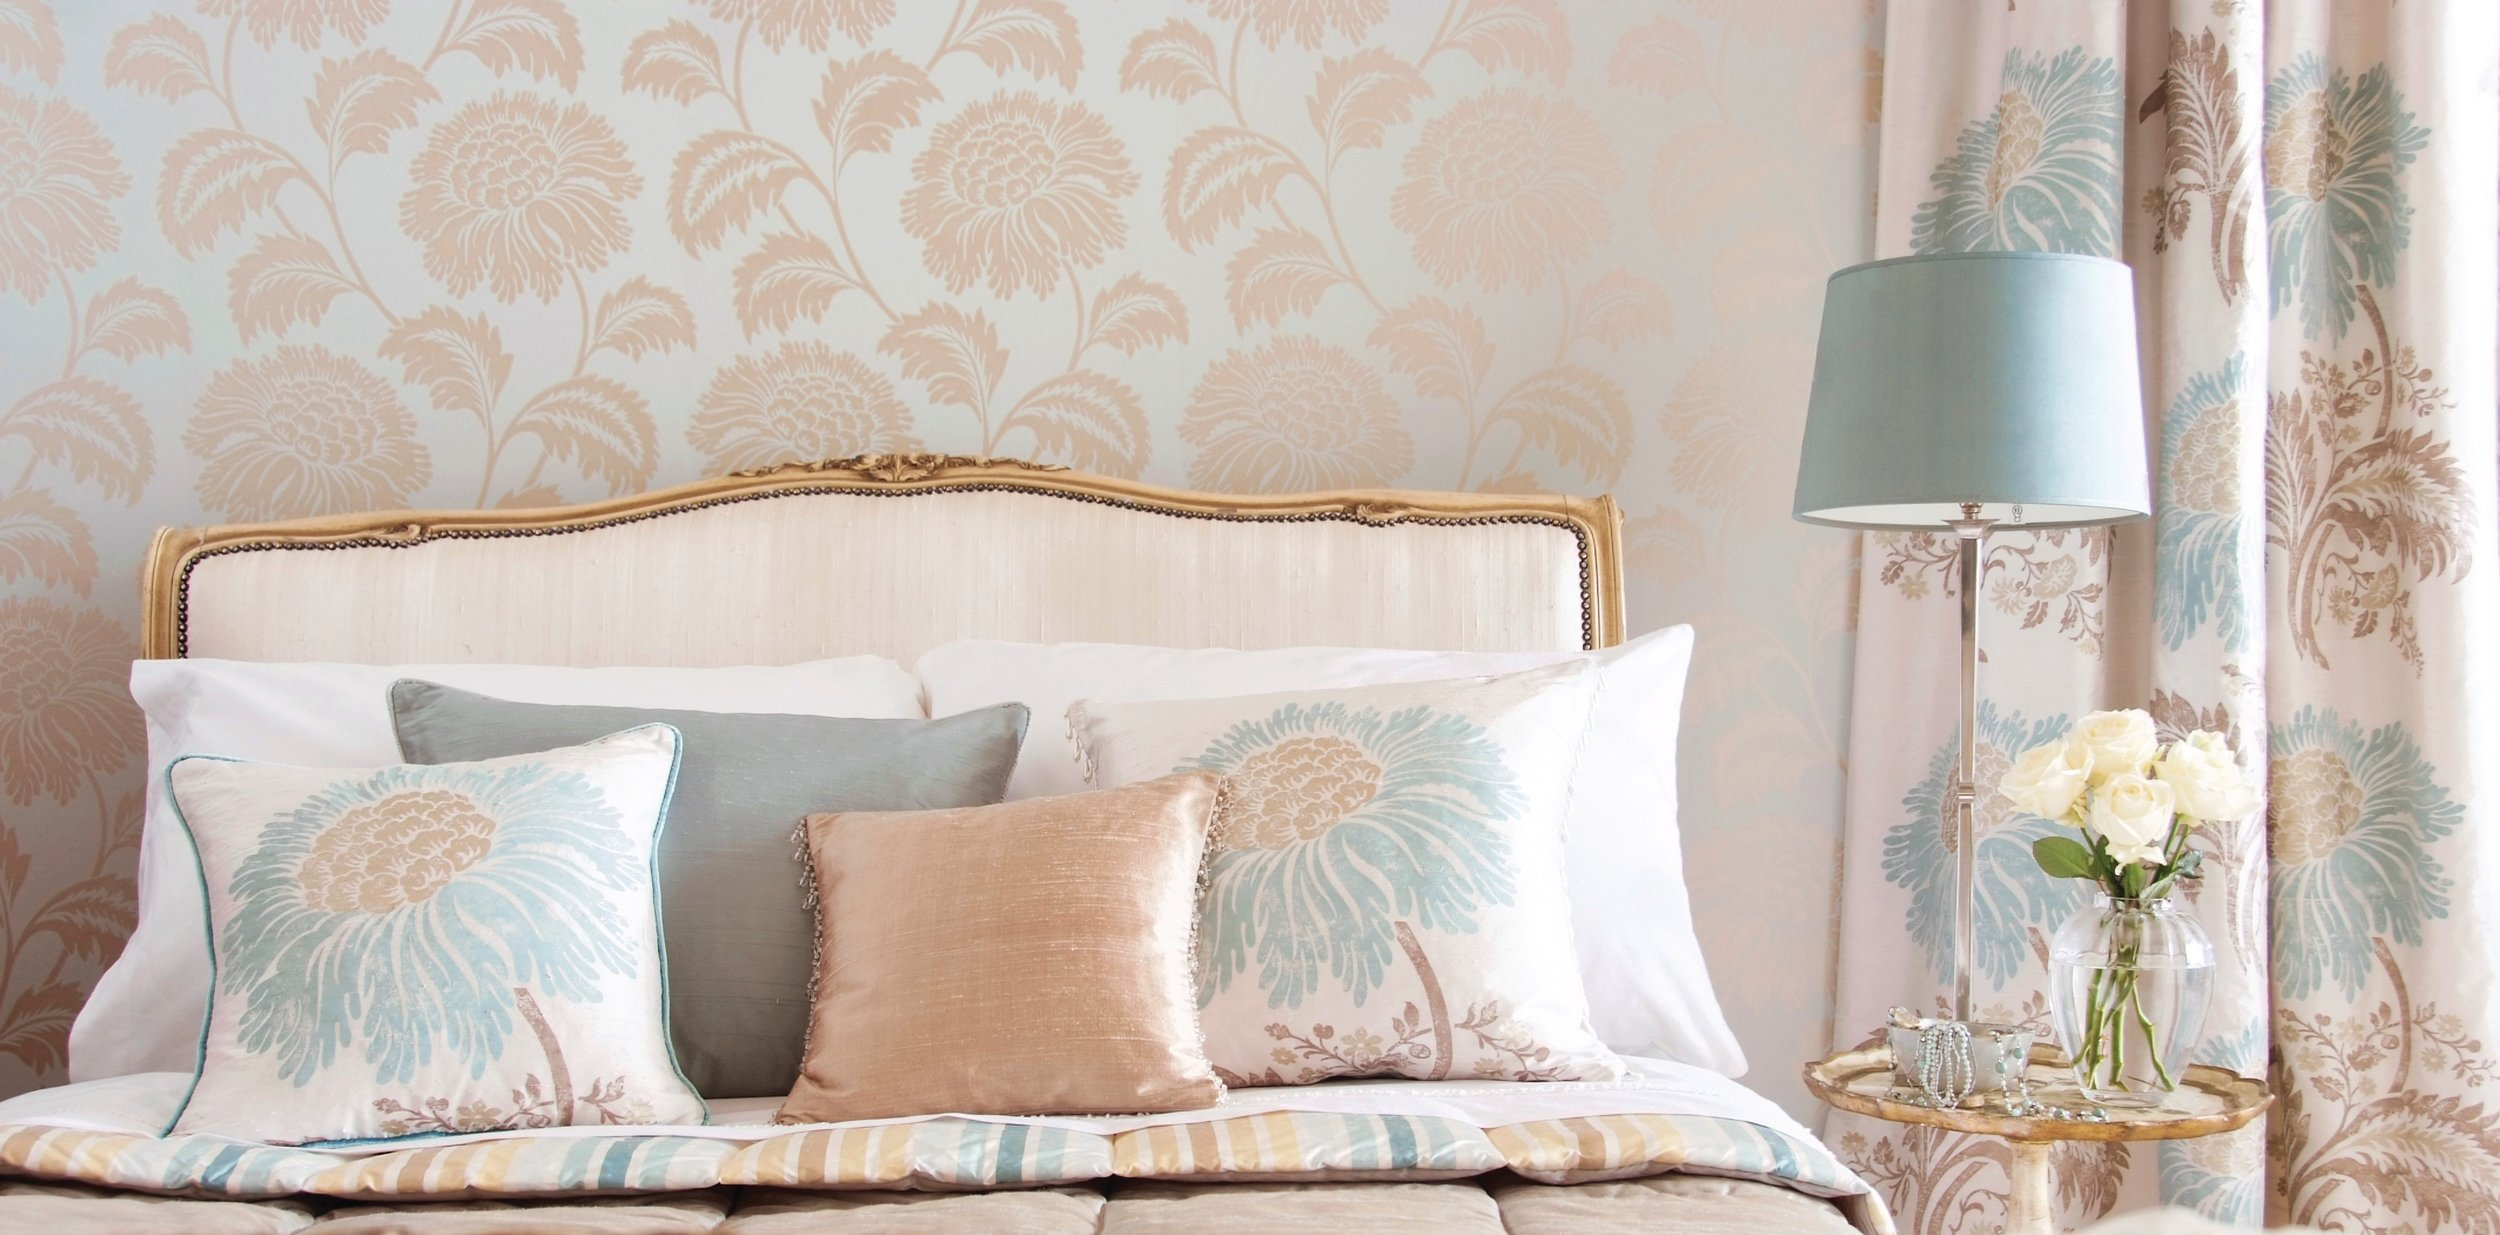 There is nothing in your home softer than your bed…and custom pillows, duvets, comforters and spreads will visually add beauty as well as add to your comfort.